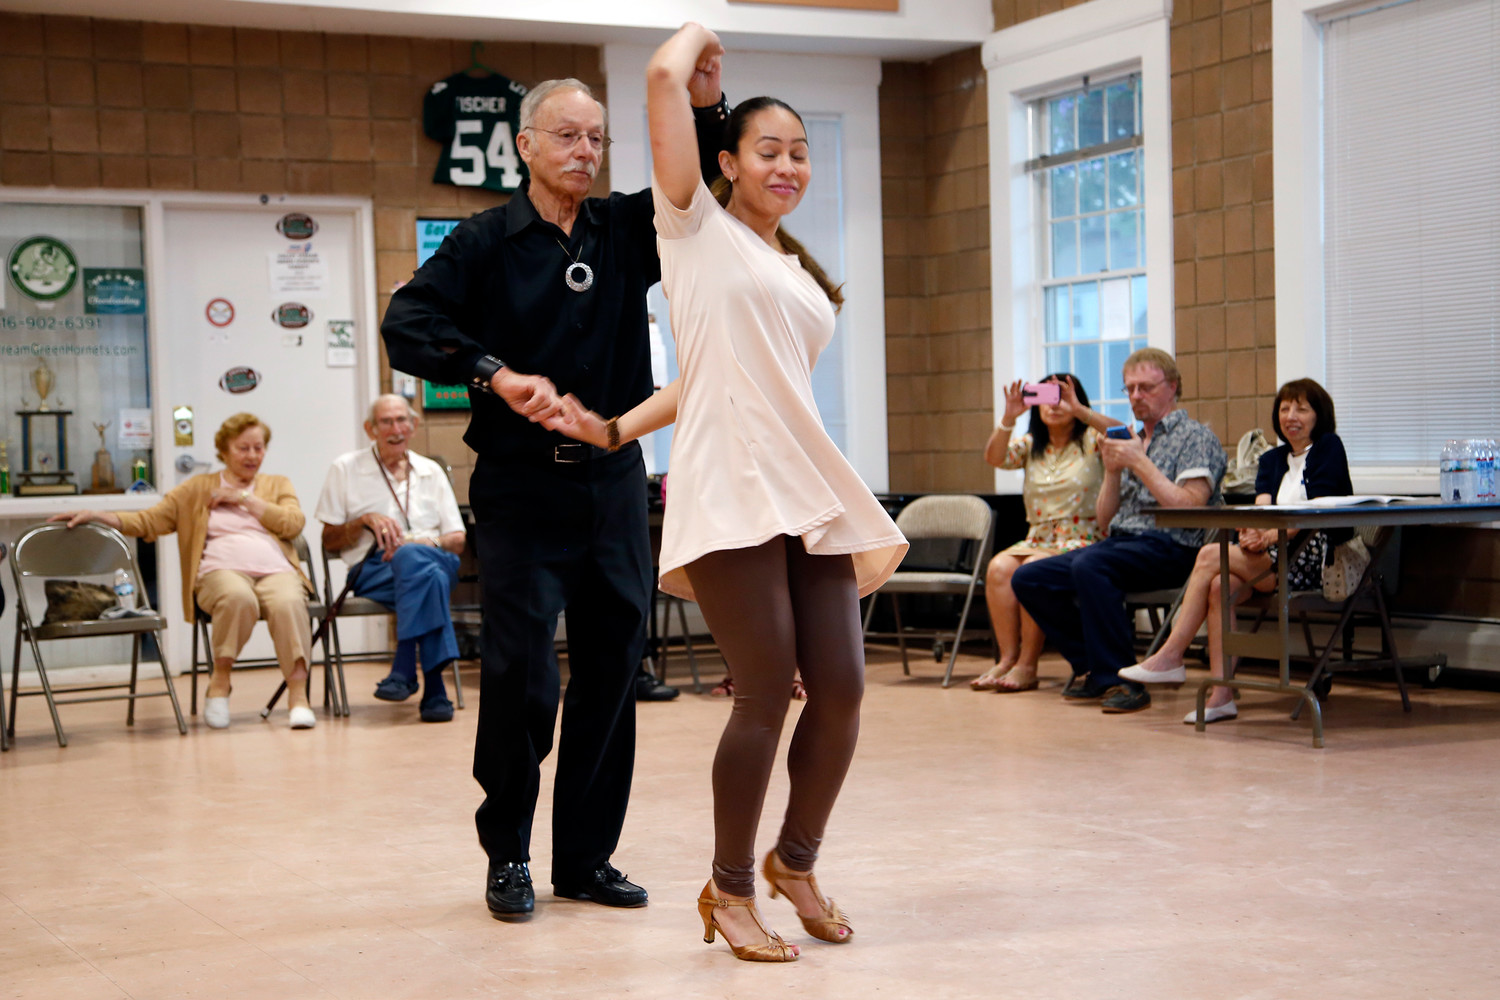 Guy Ferrara, above with dancing partner Karina Hernandez, led several free salsa dancing lessons for senior citizens in Valley Stream this year. His entertaining persona has earned him something of a cult following.